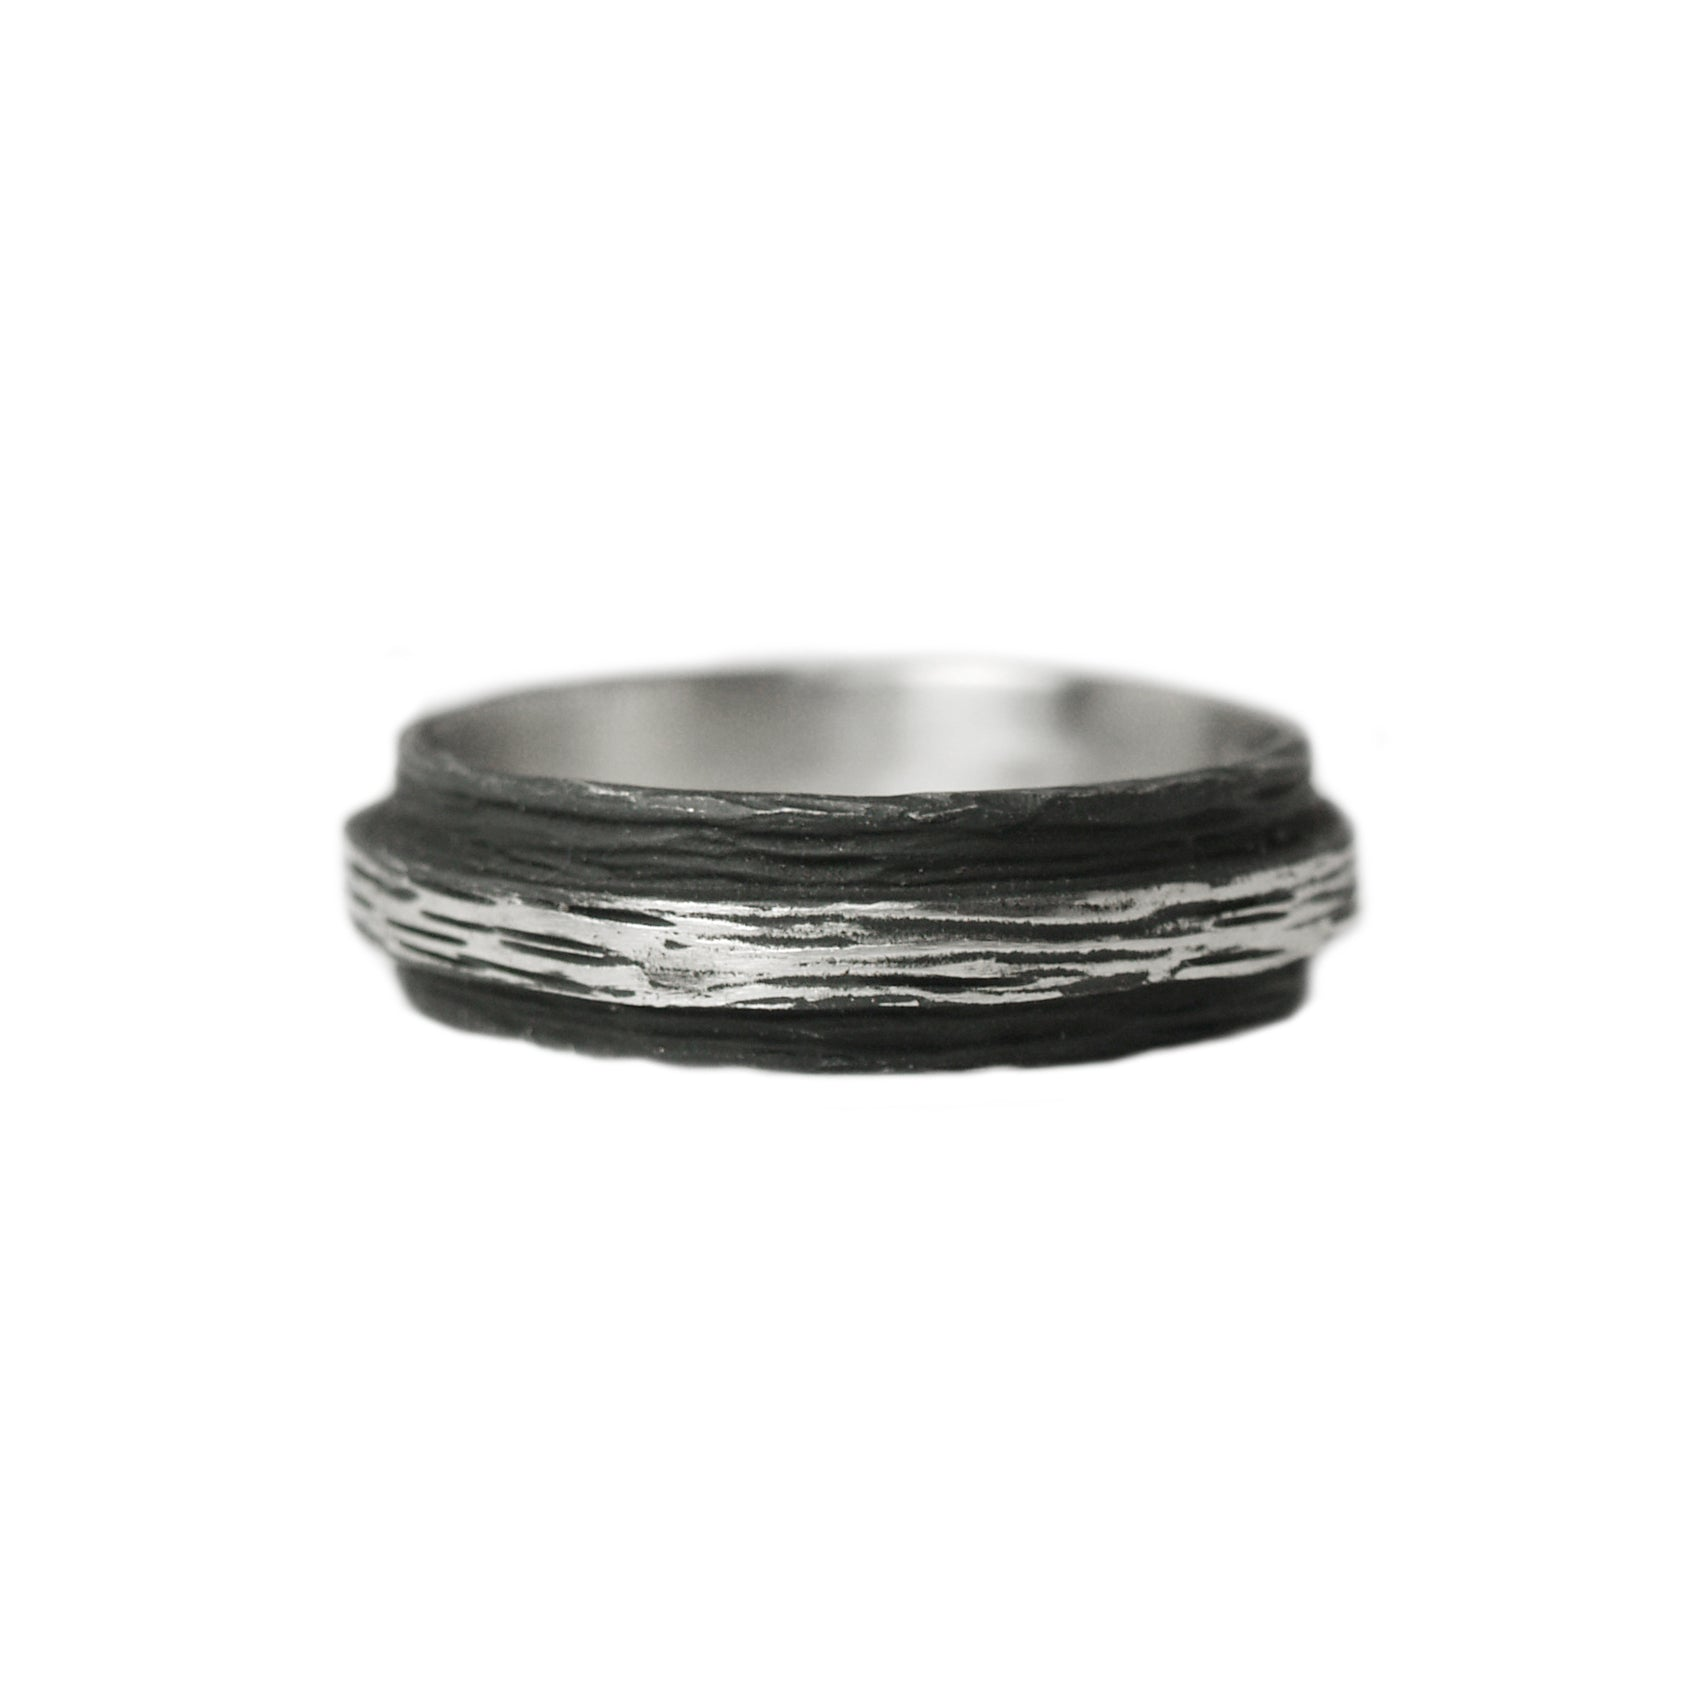 blackened steel 'pebble' ring